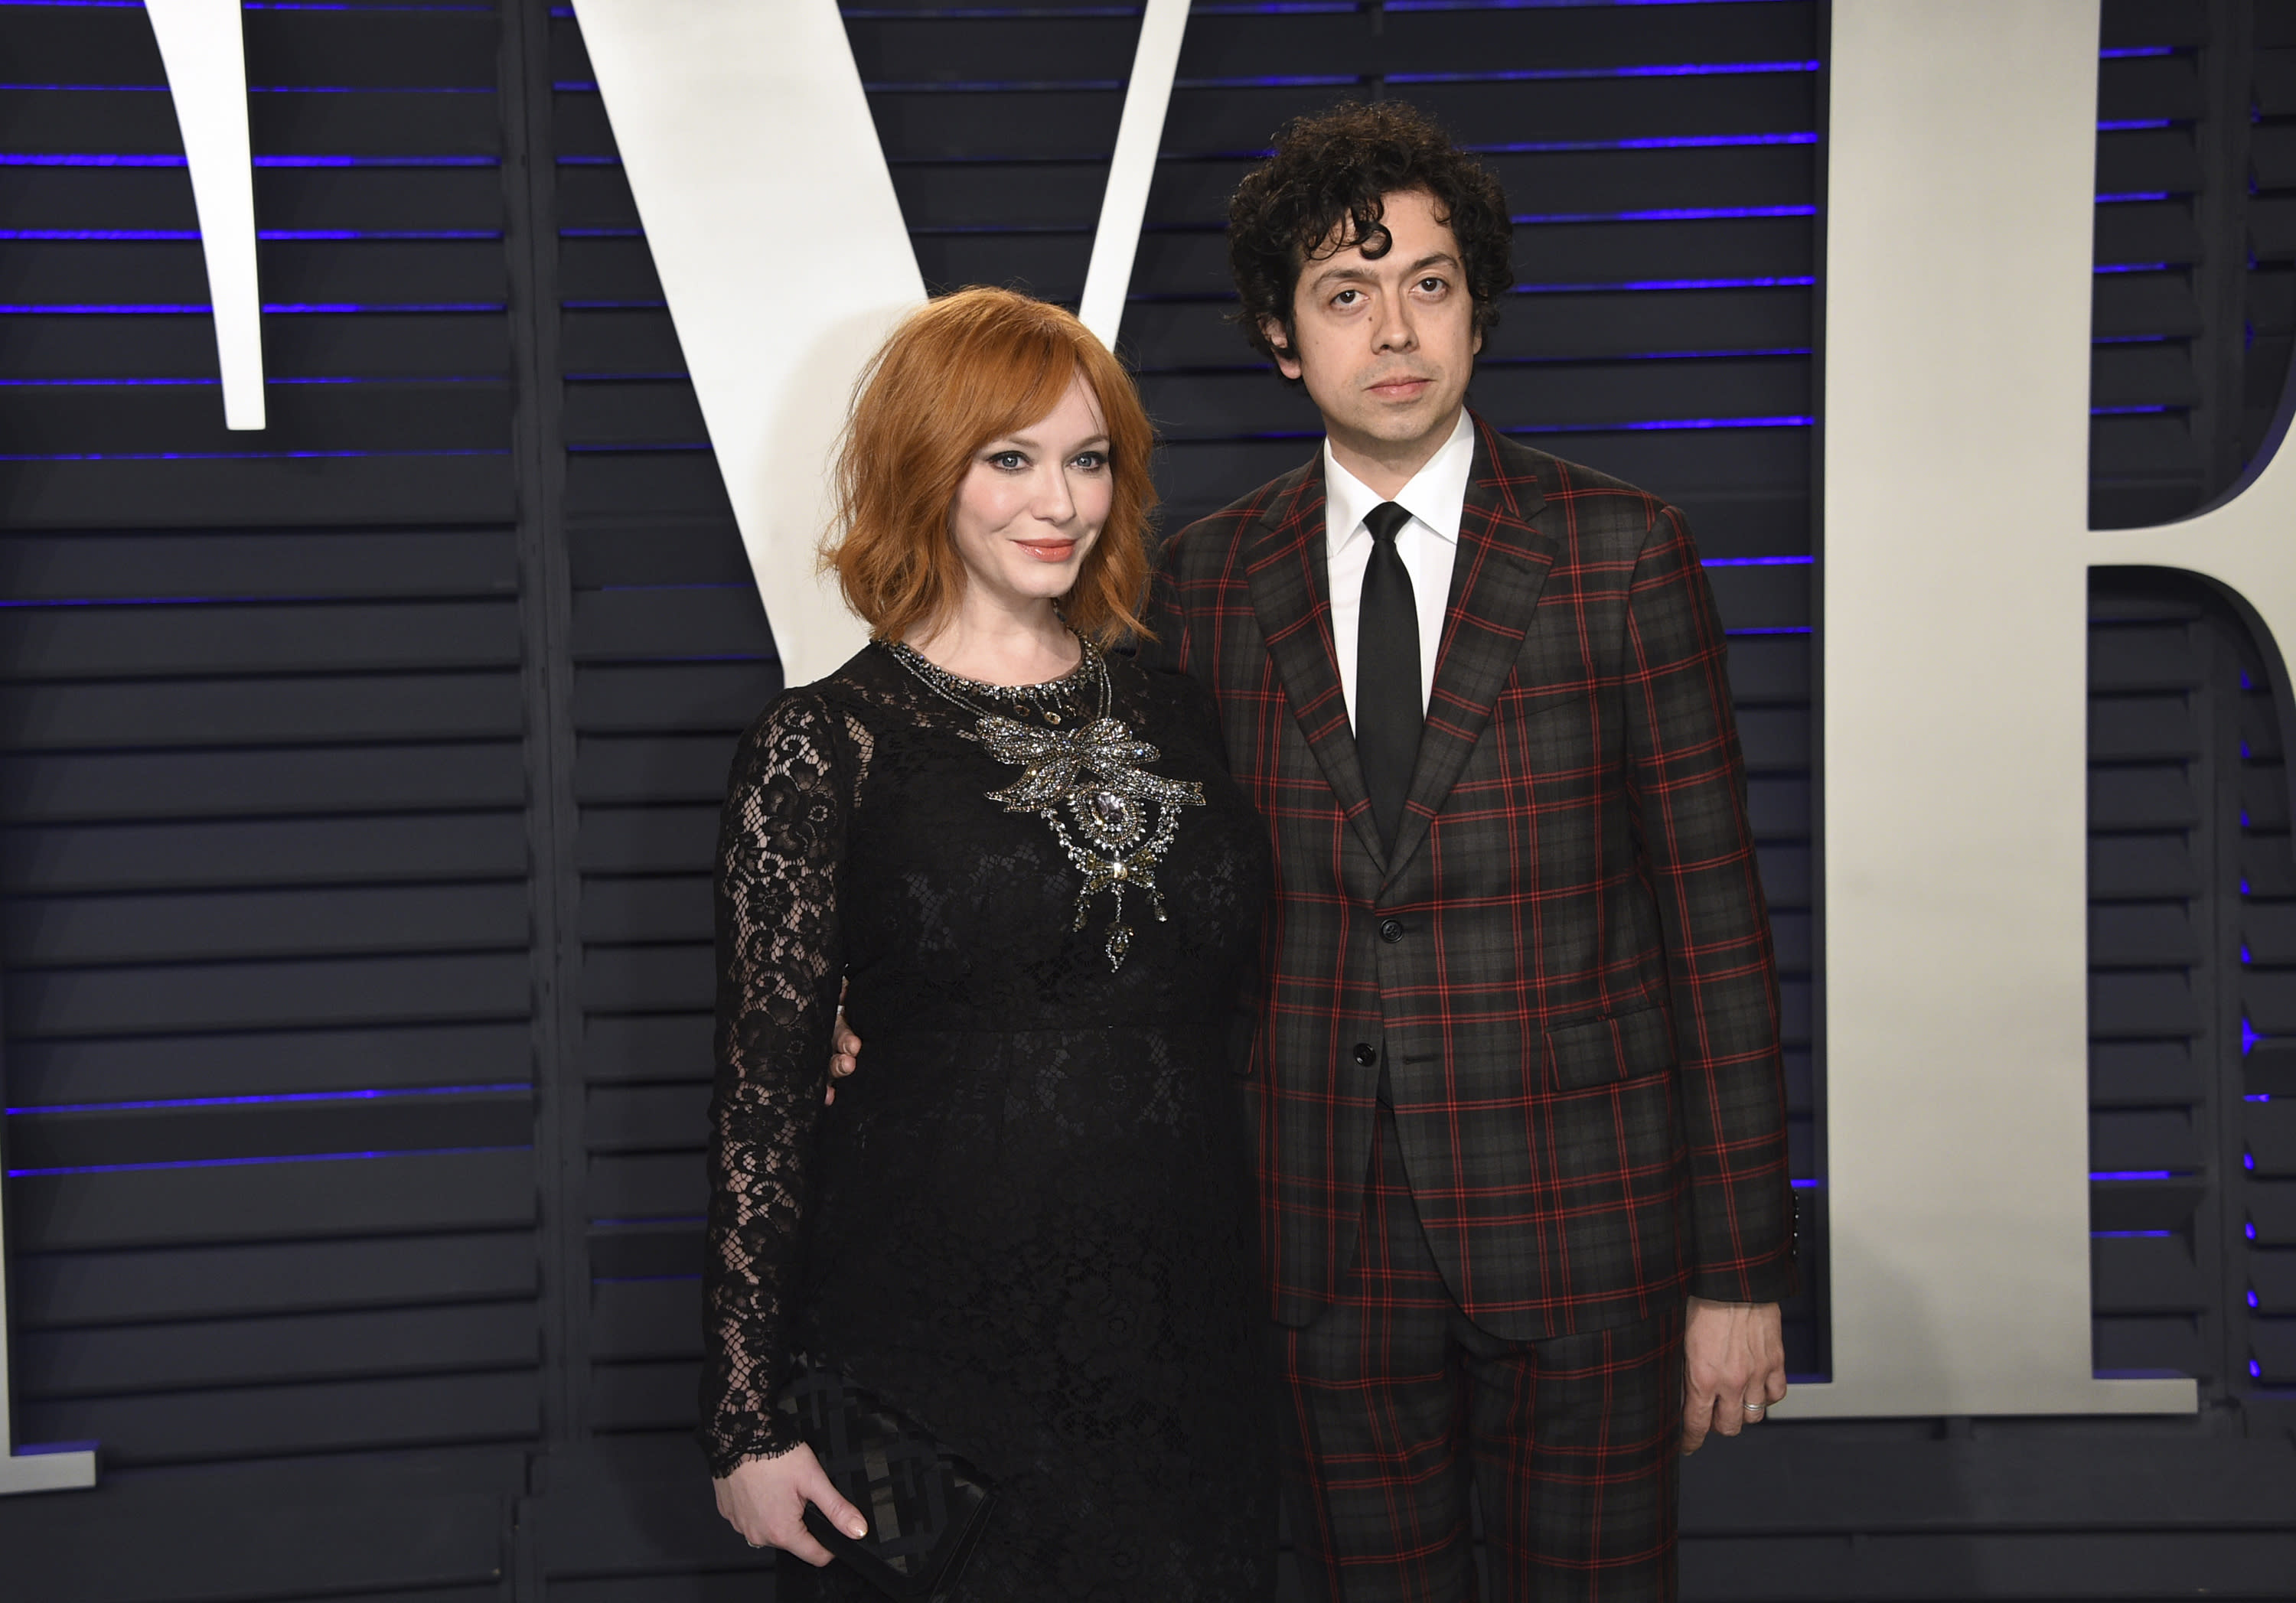 Christina Hendricks files for divorce following 8-month separation